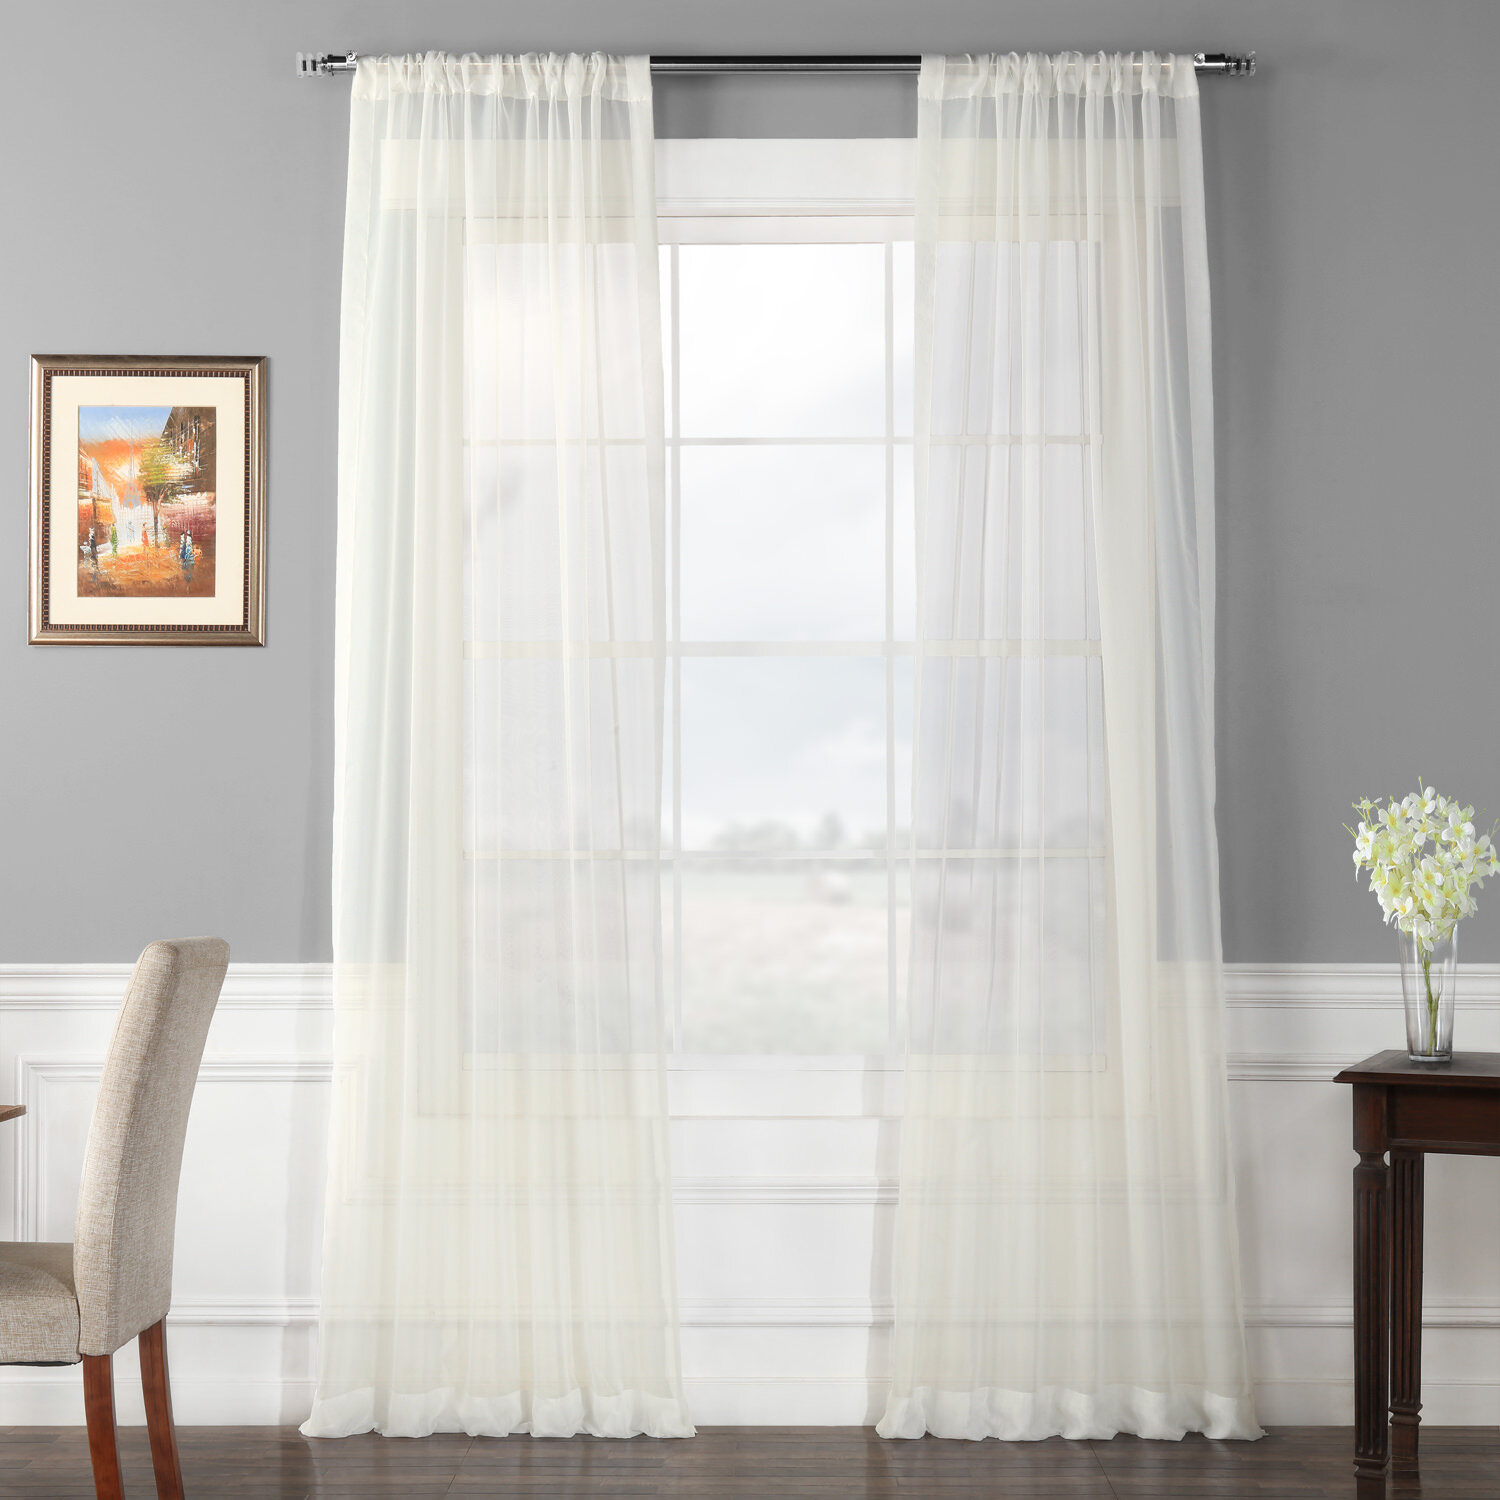 Emie Solid Sheer Rod Pocket Curtain Panels With Regard To Rod Pocket Curtain Panels (View 5 of 20)